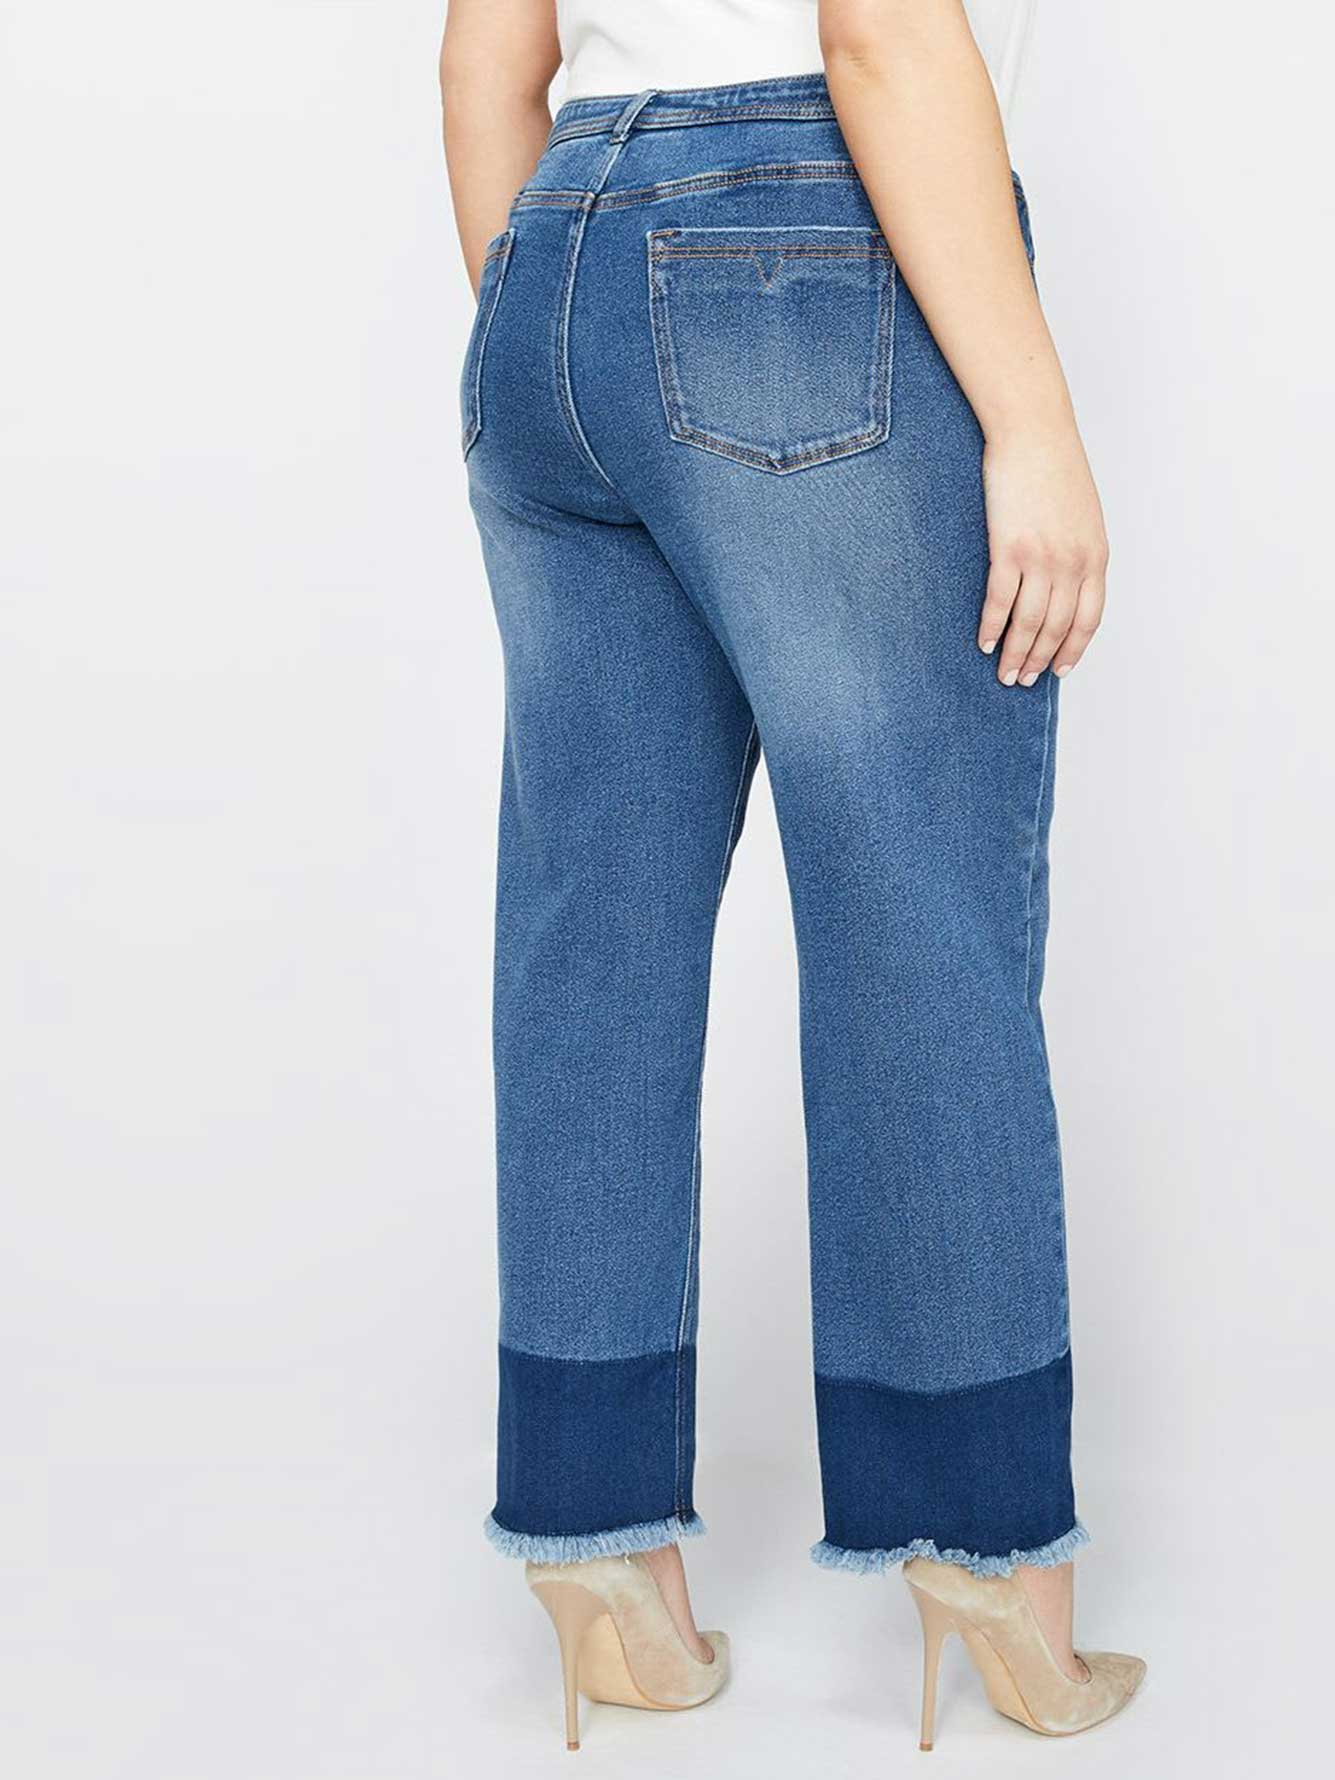 L&L Authentic Slim Jean with Released Hem, Relaxed Fit